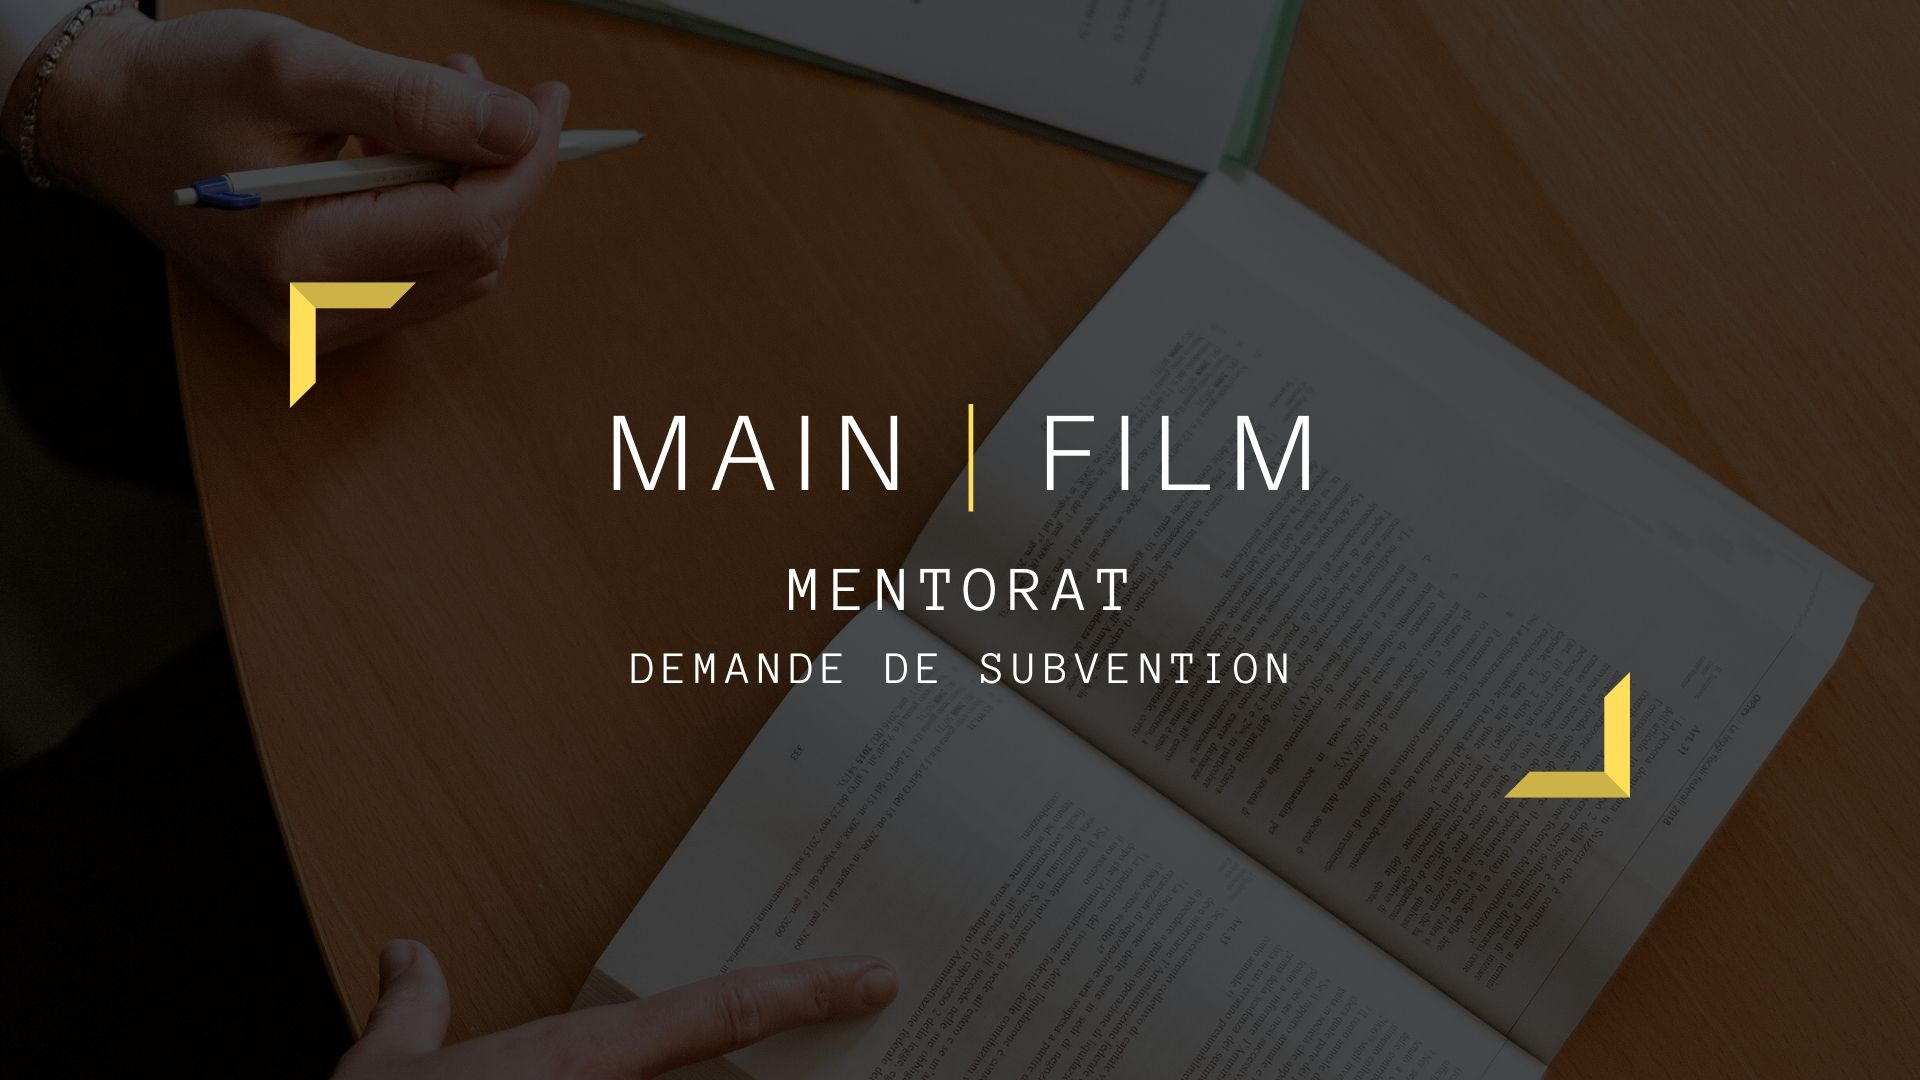 Mentorzt demande de subvention